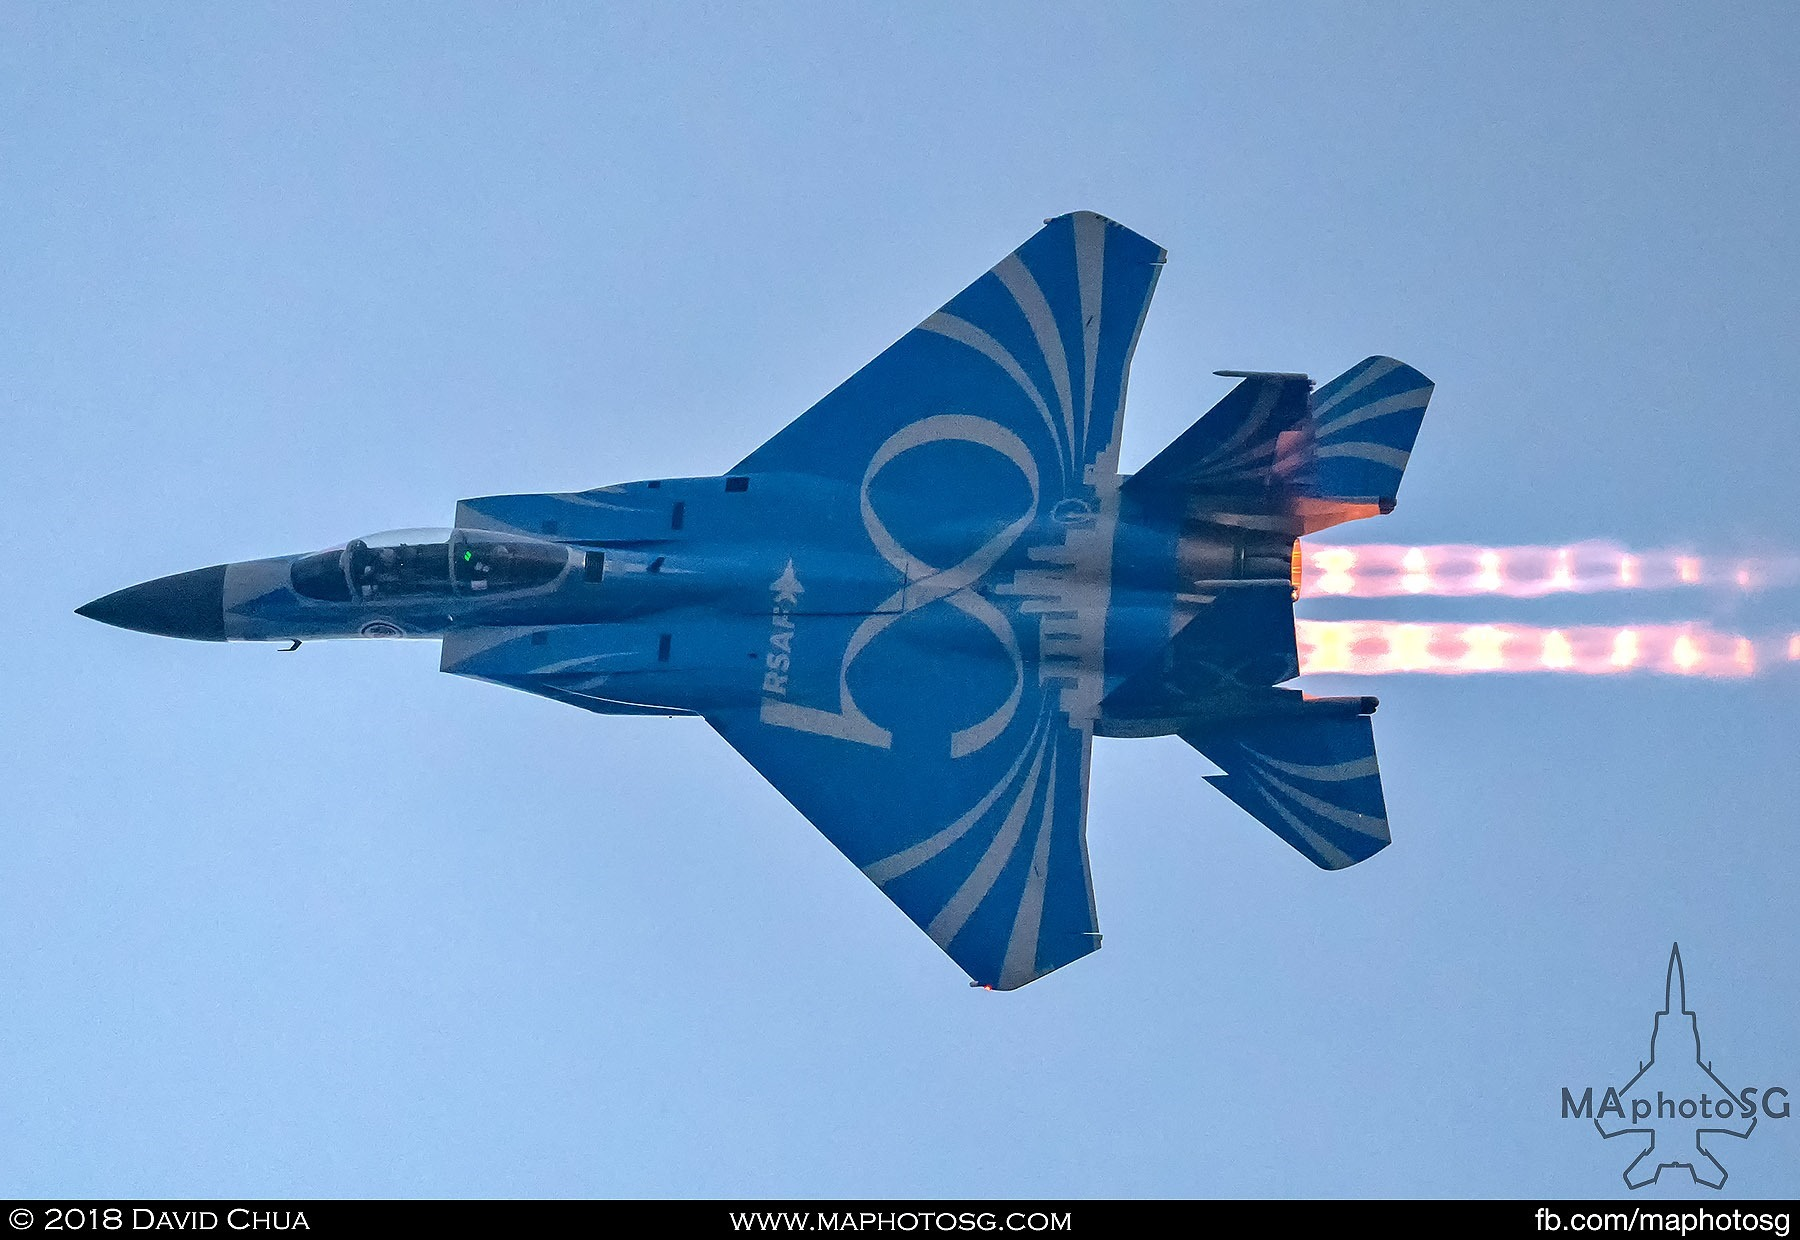 1904 – Single RSAF50 Livery F-15SG Strike Eagle performs High-G turns.